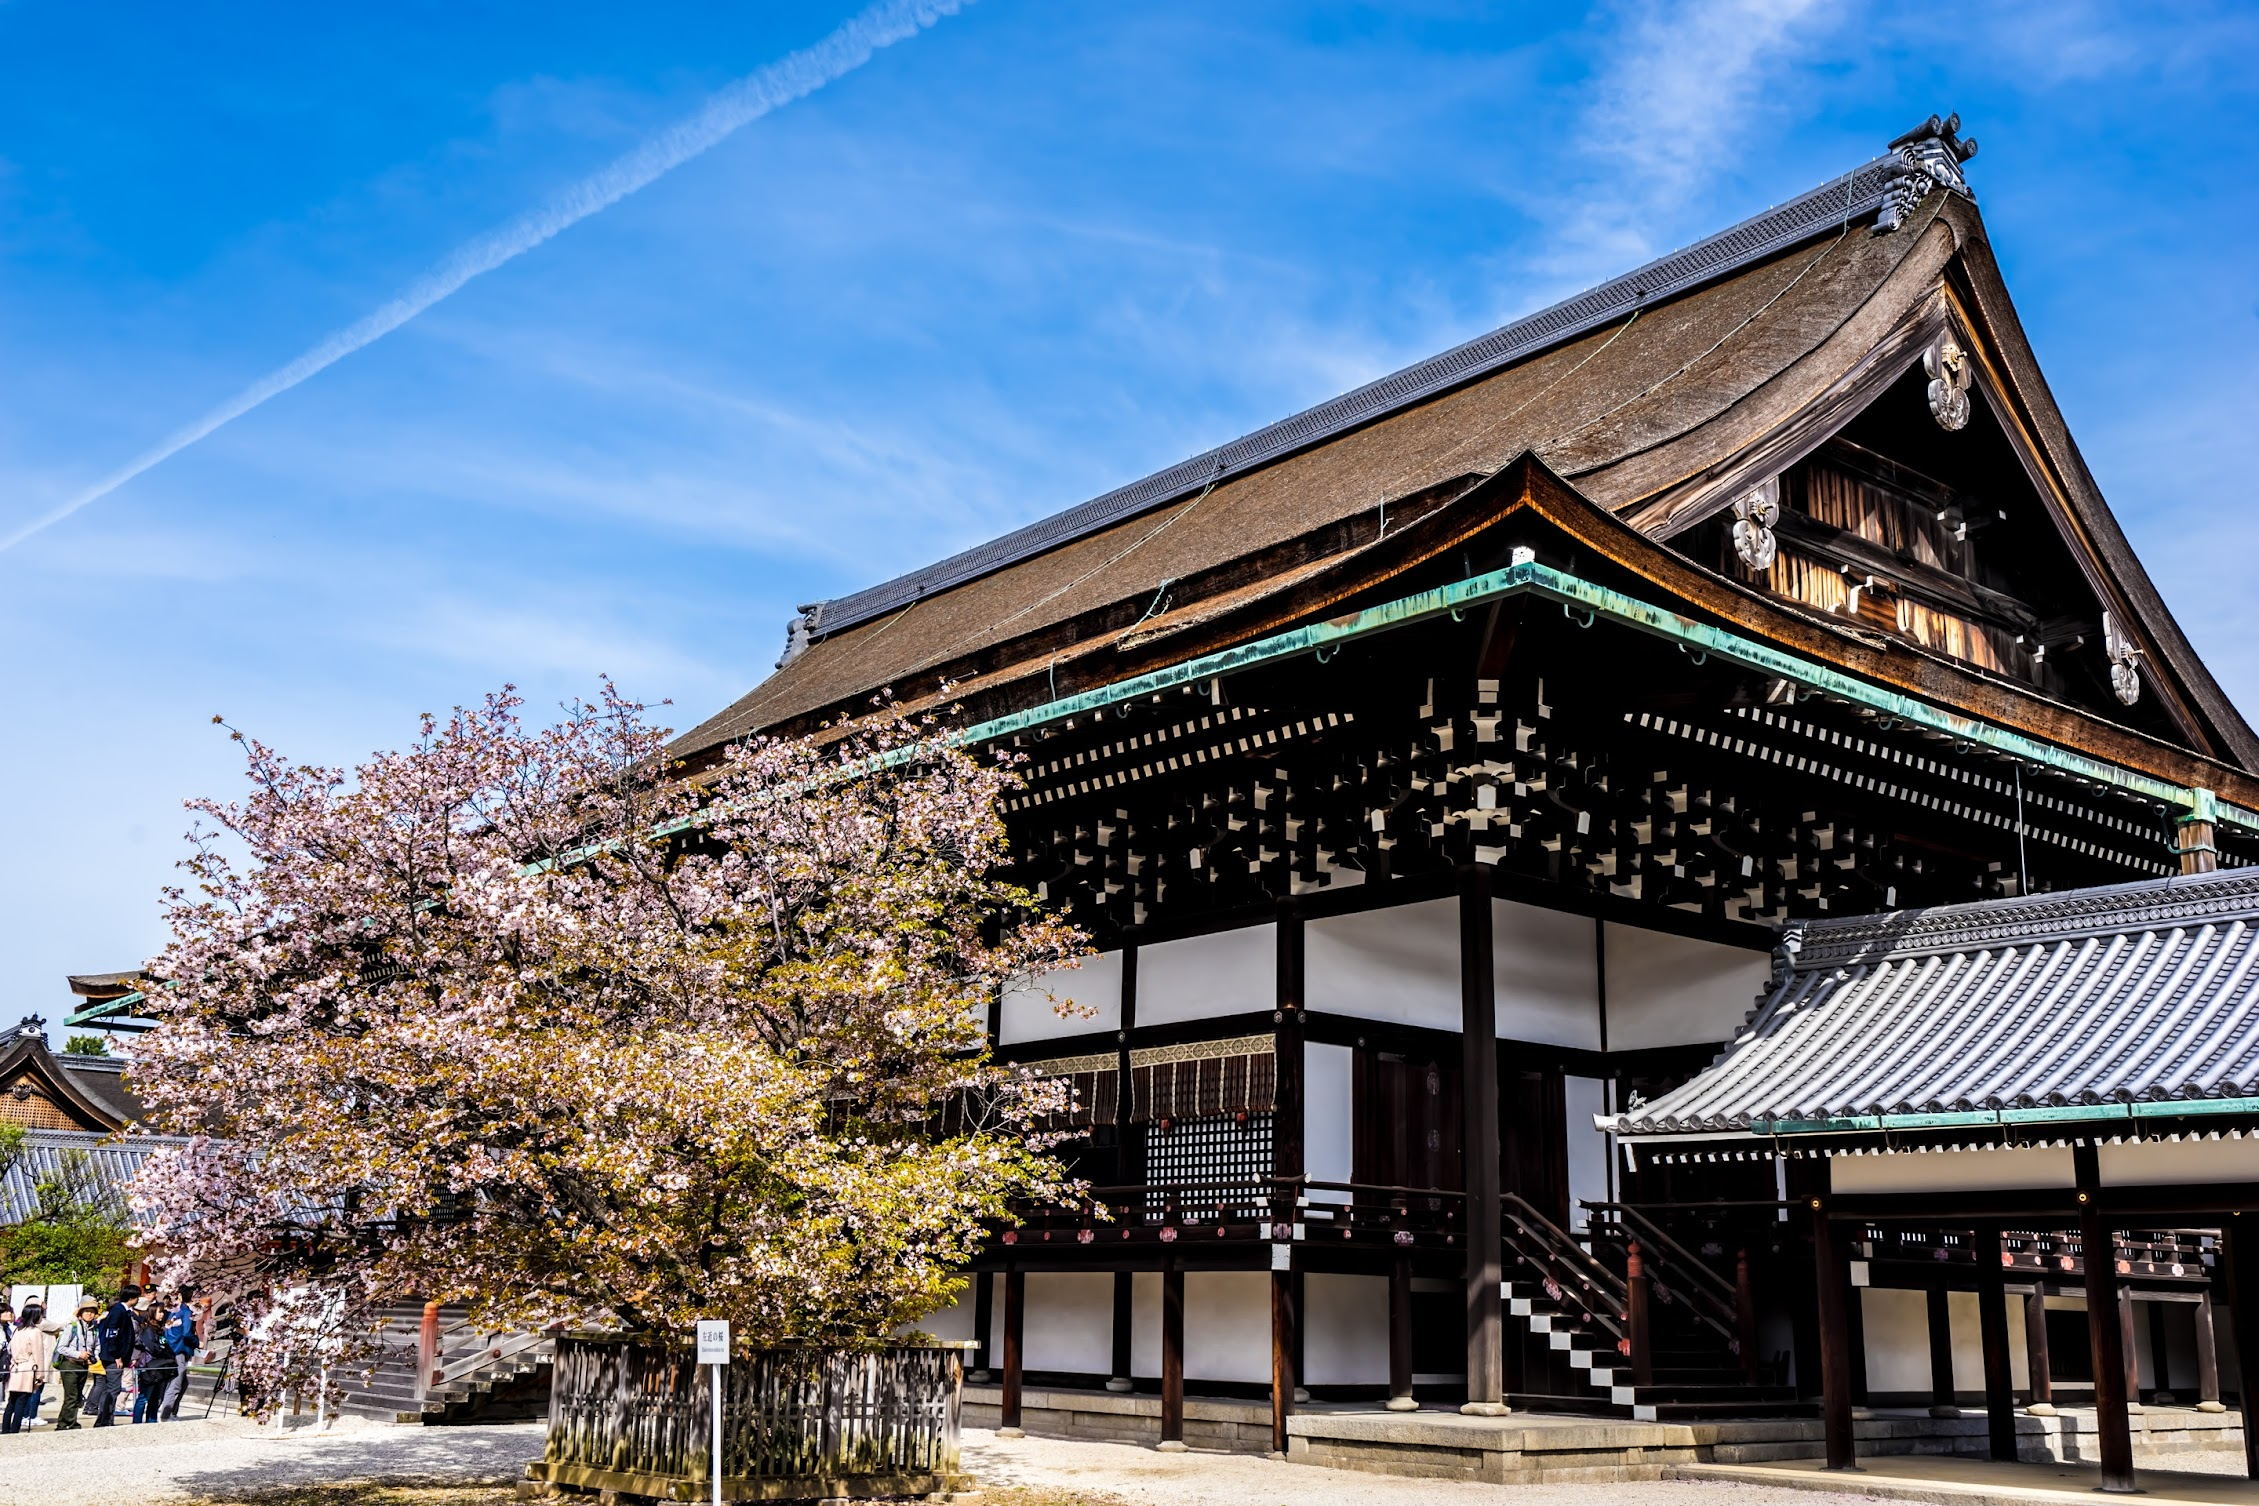 Kyoto Imperial Palace Shishinden Cherry blossoms